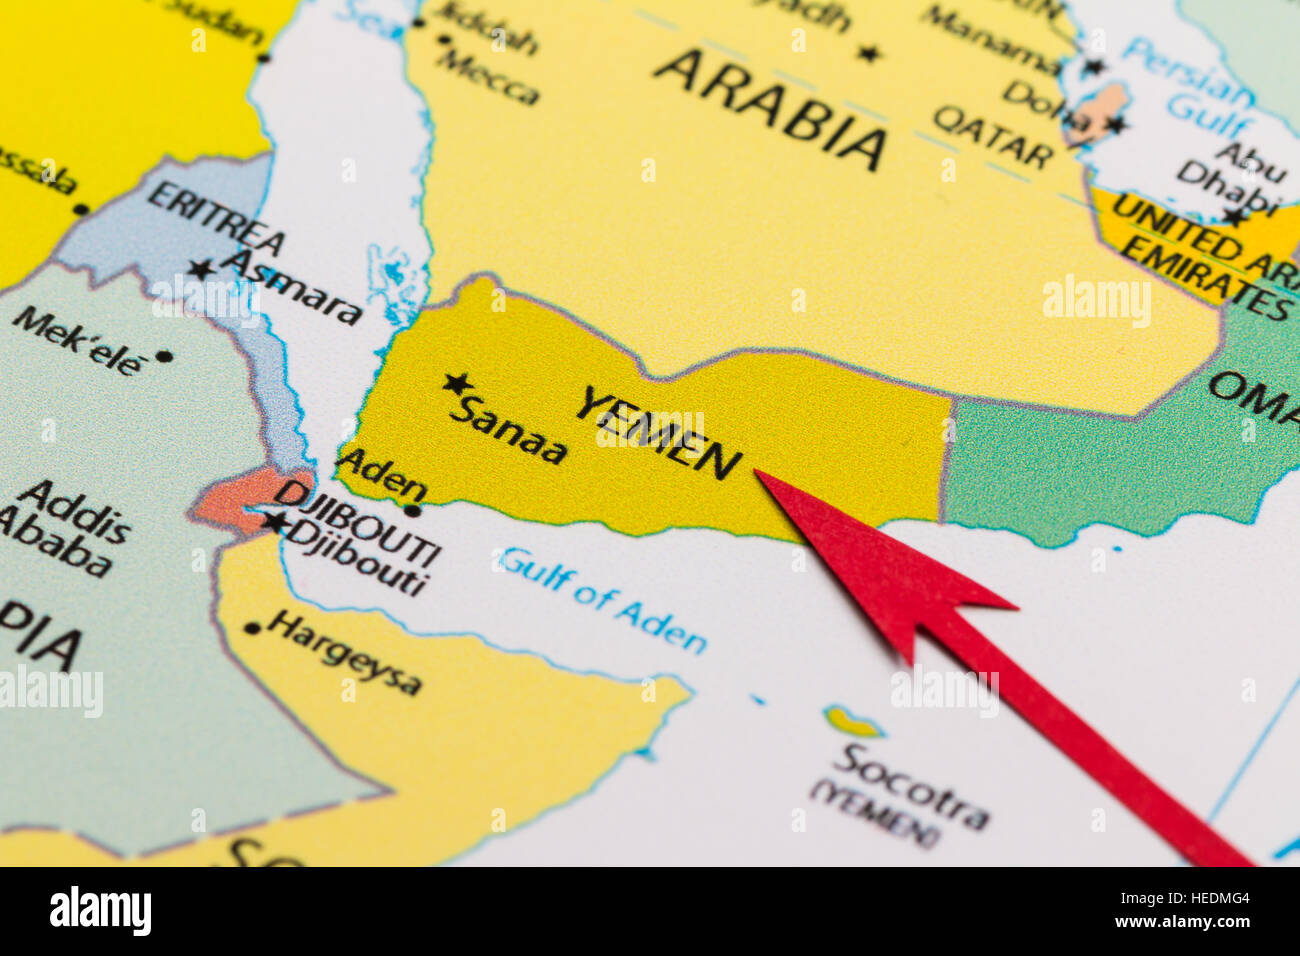 Red arrow pointing Yemen on the map of Asia continent Stock Photo